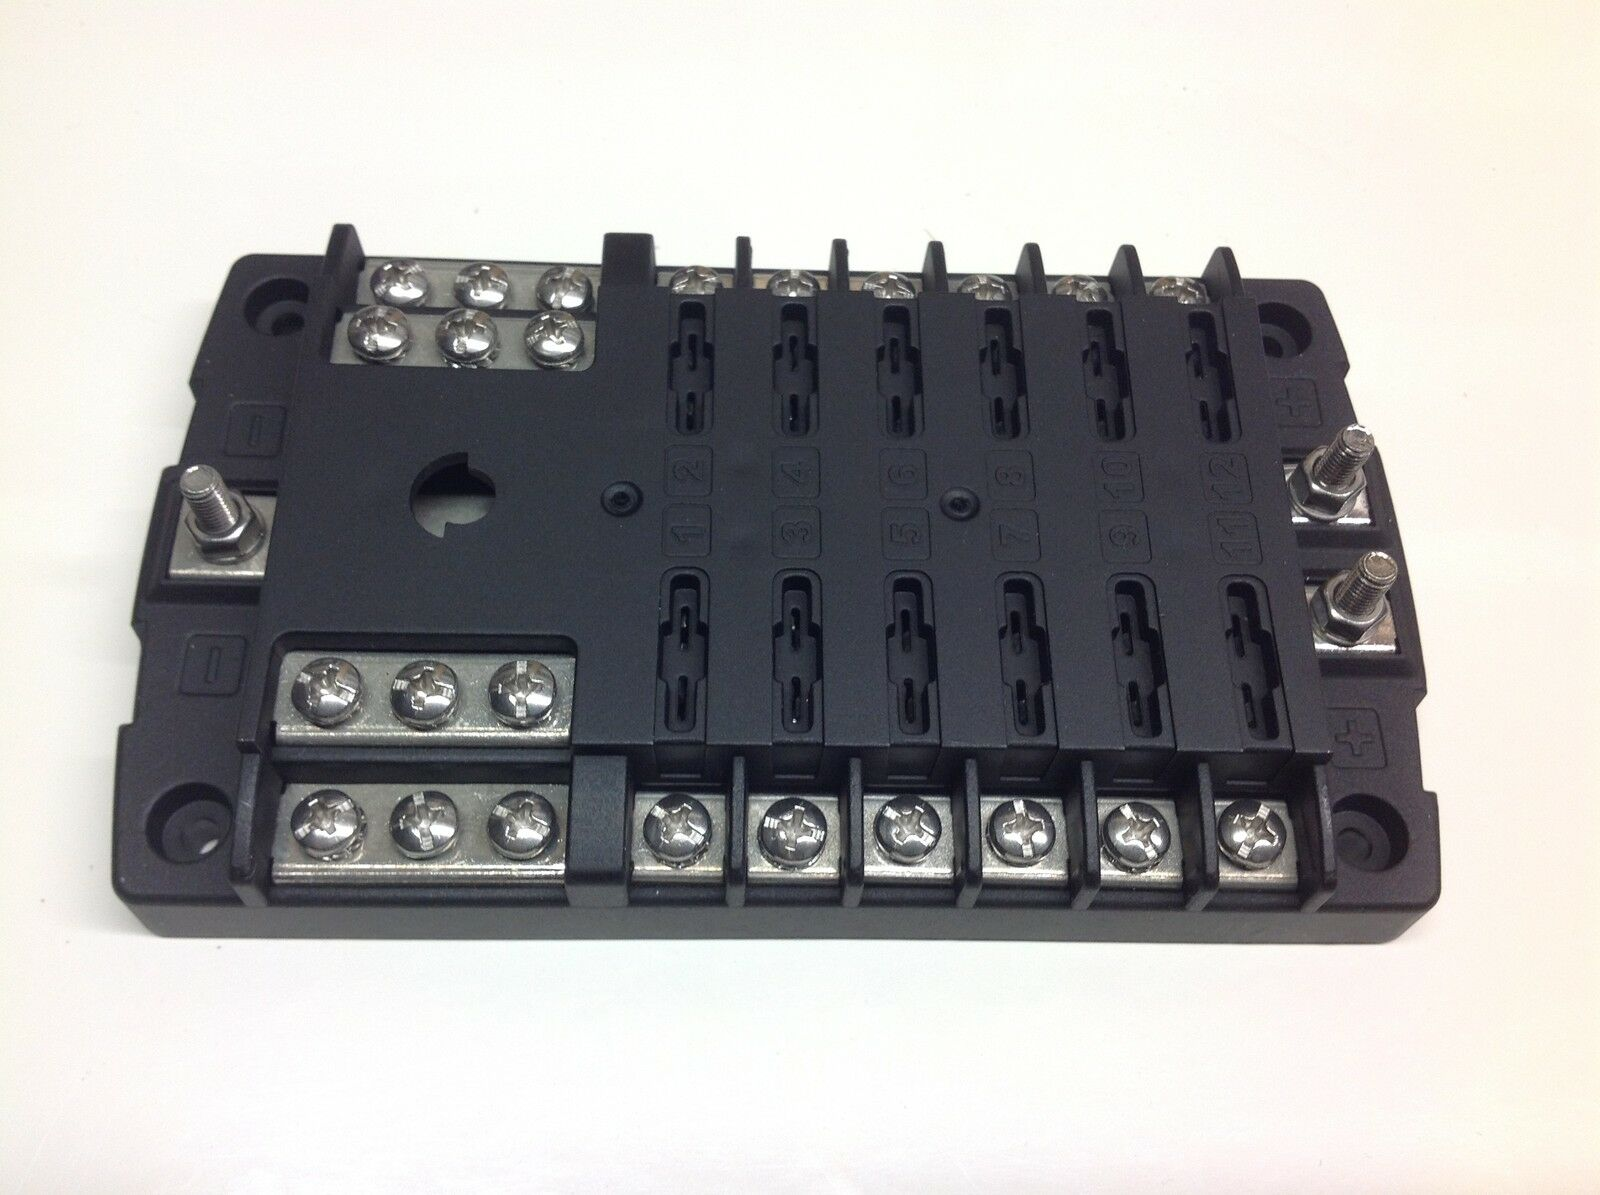 12 Way Standard Blade Fuse Box With Positive Bus Bars Negative In 2 Of 3 Bar 12v 24v